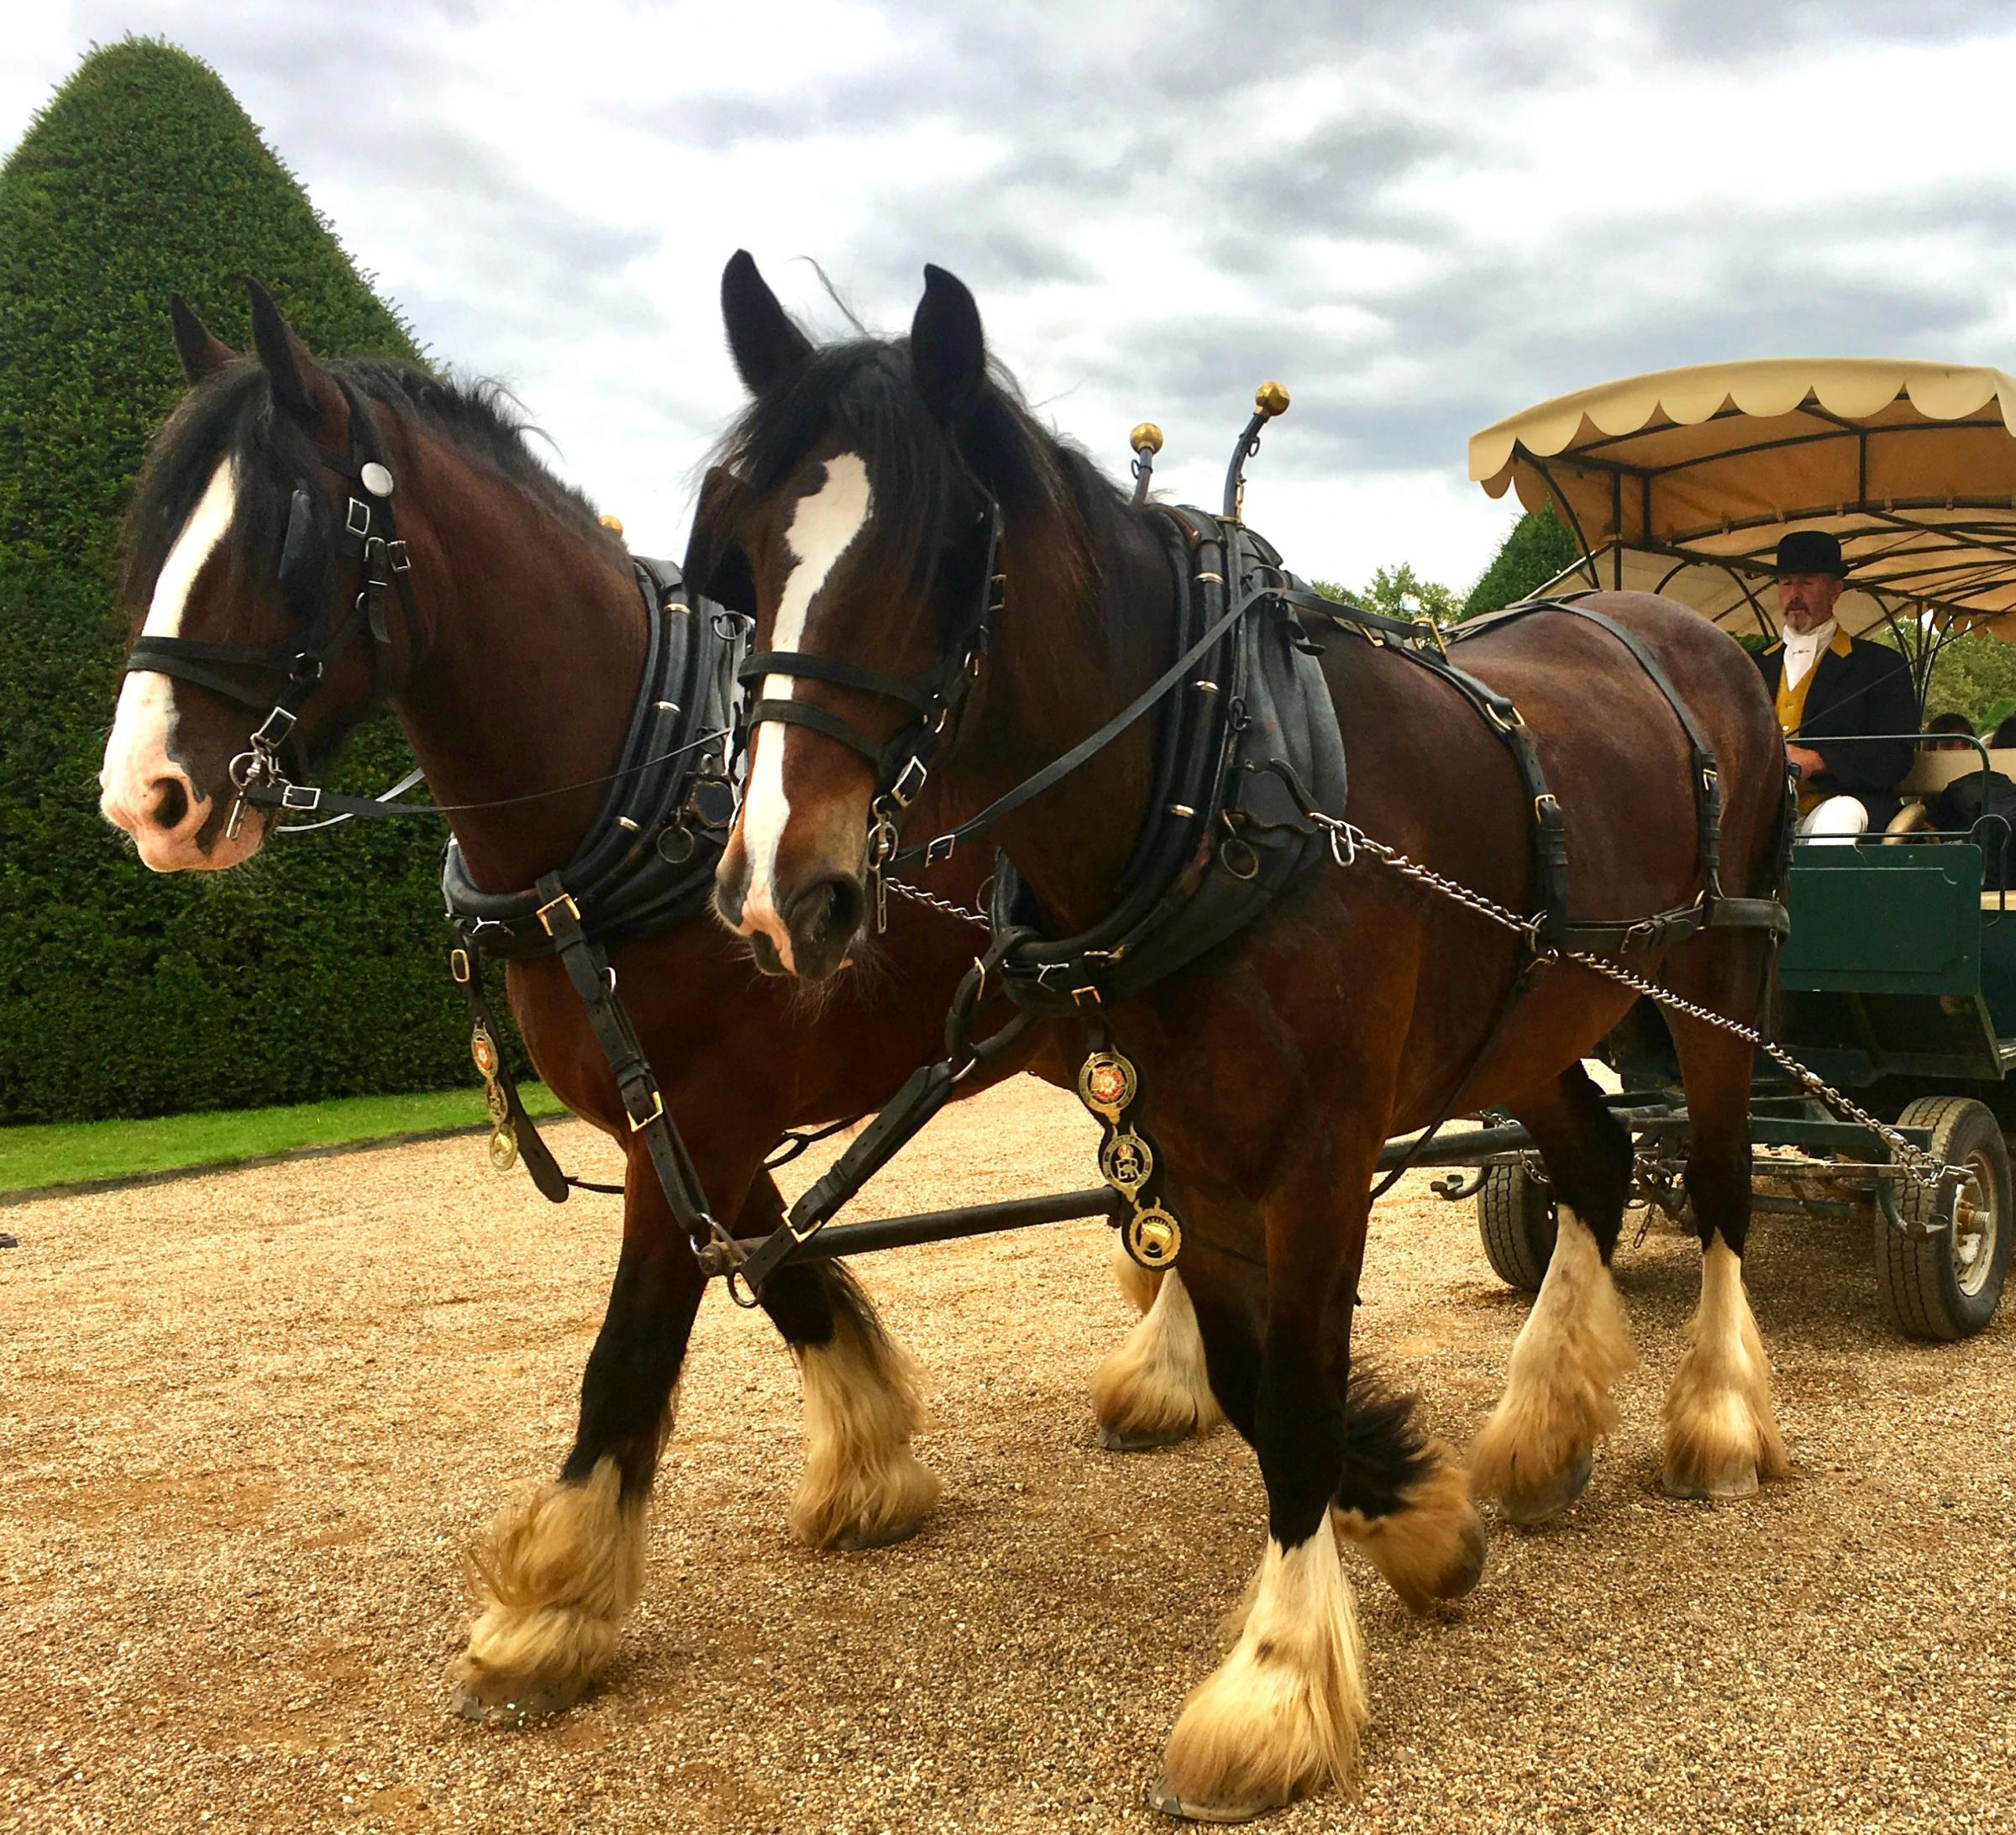 Festive carriage rides, Sat & Sun 7-8, 14-15, 21-22 Dec, 10am-4pm